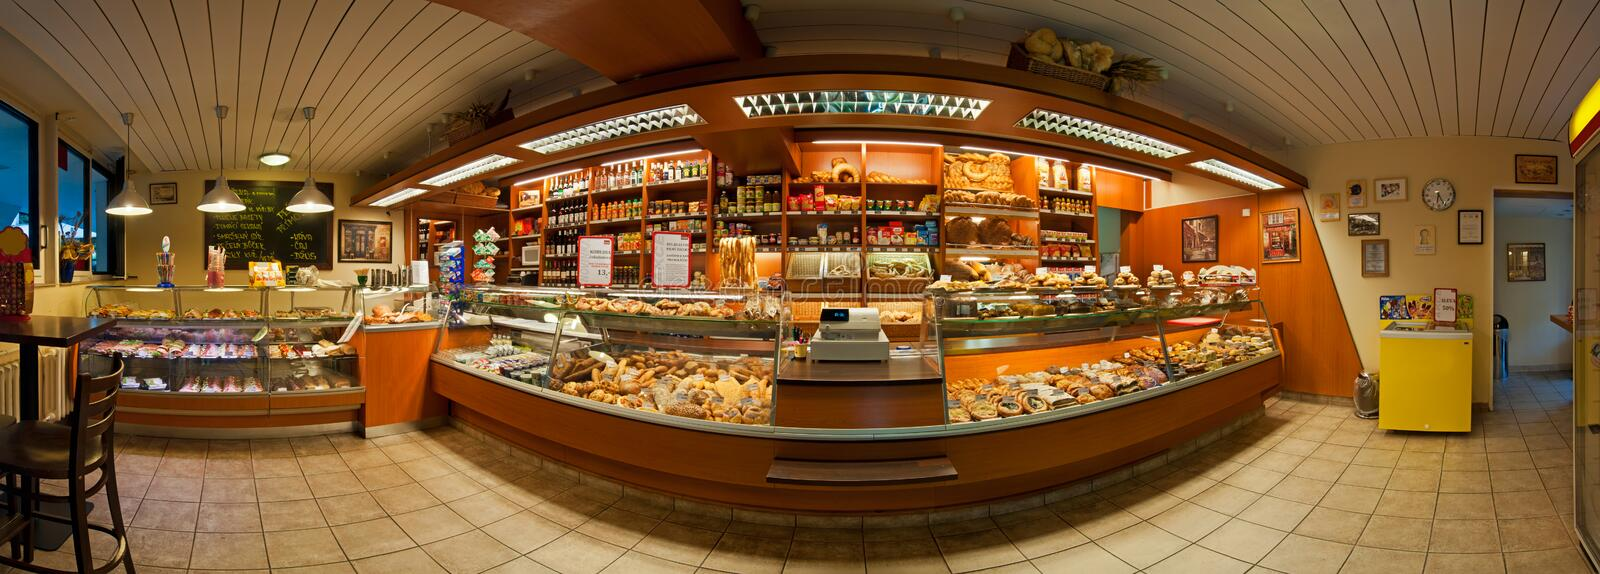 Bakery Shop. PRAGUE, CZECH REPUBLIC - JUNE 29: Panoramic view of a bakery shop interior on June 29, 2012 in Prague, Czech Republic. It shows a small royalty free stock images